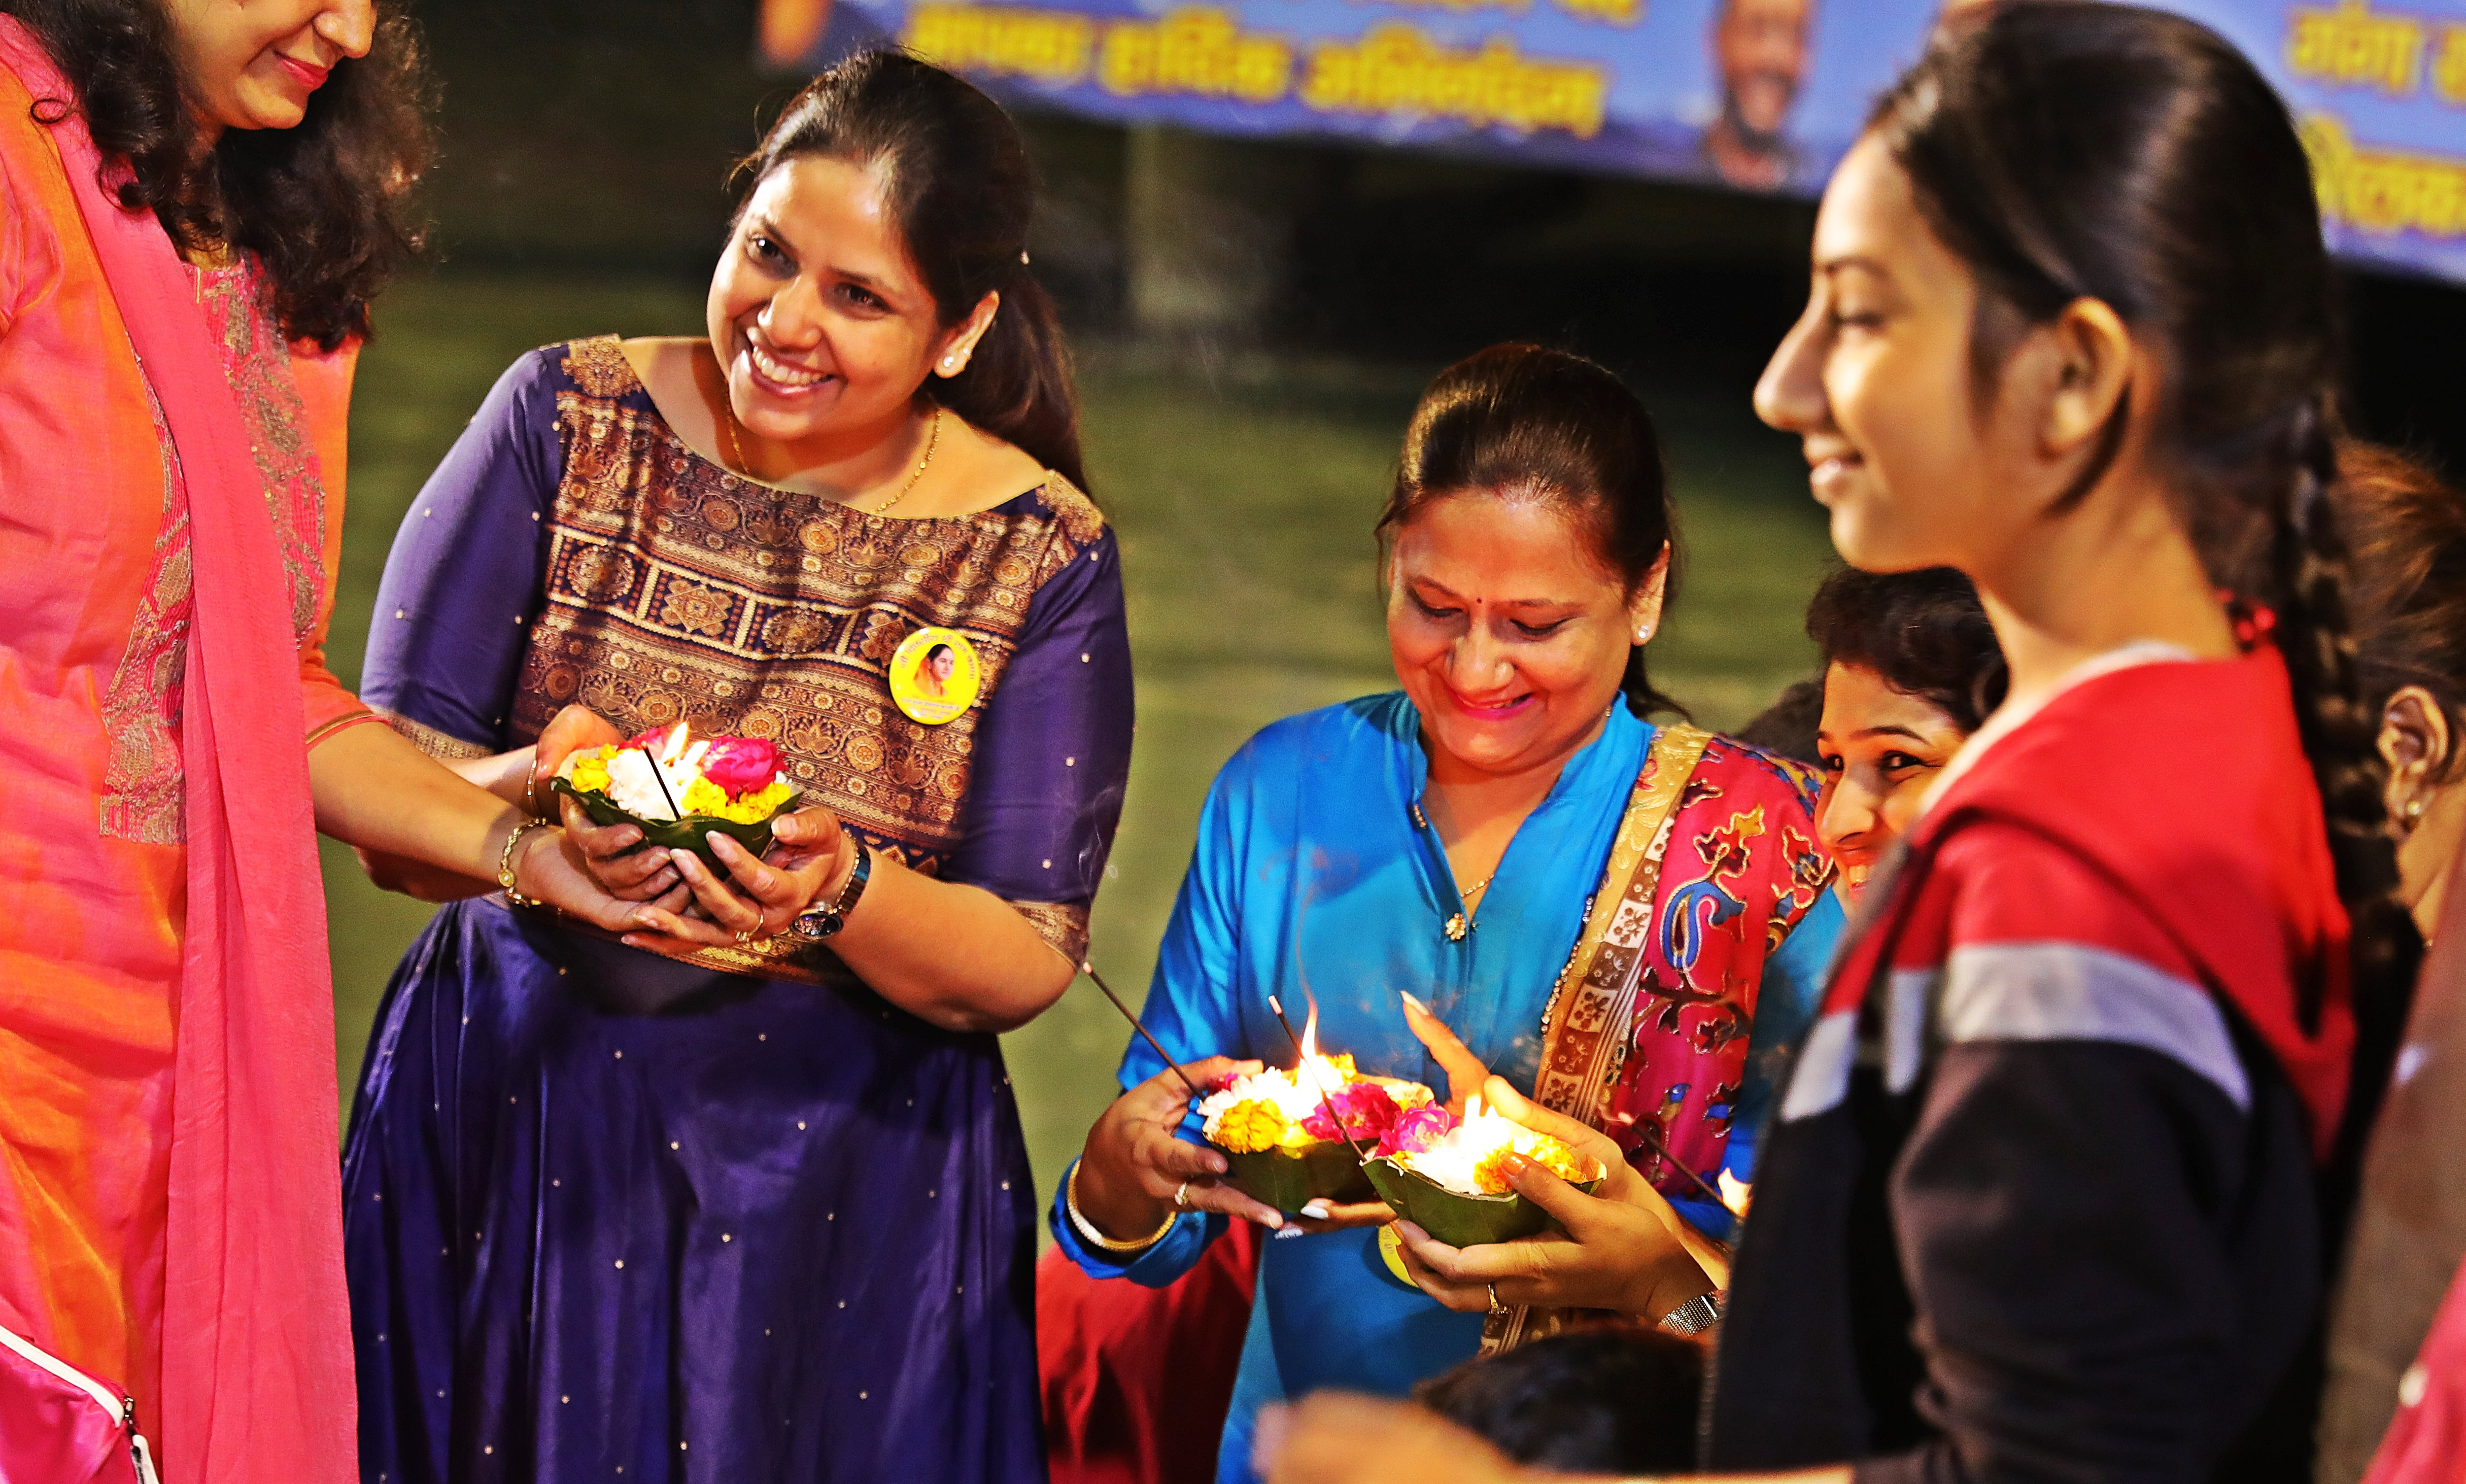 Hindu ladies with diyas